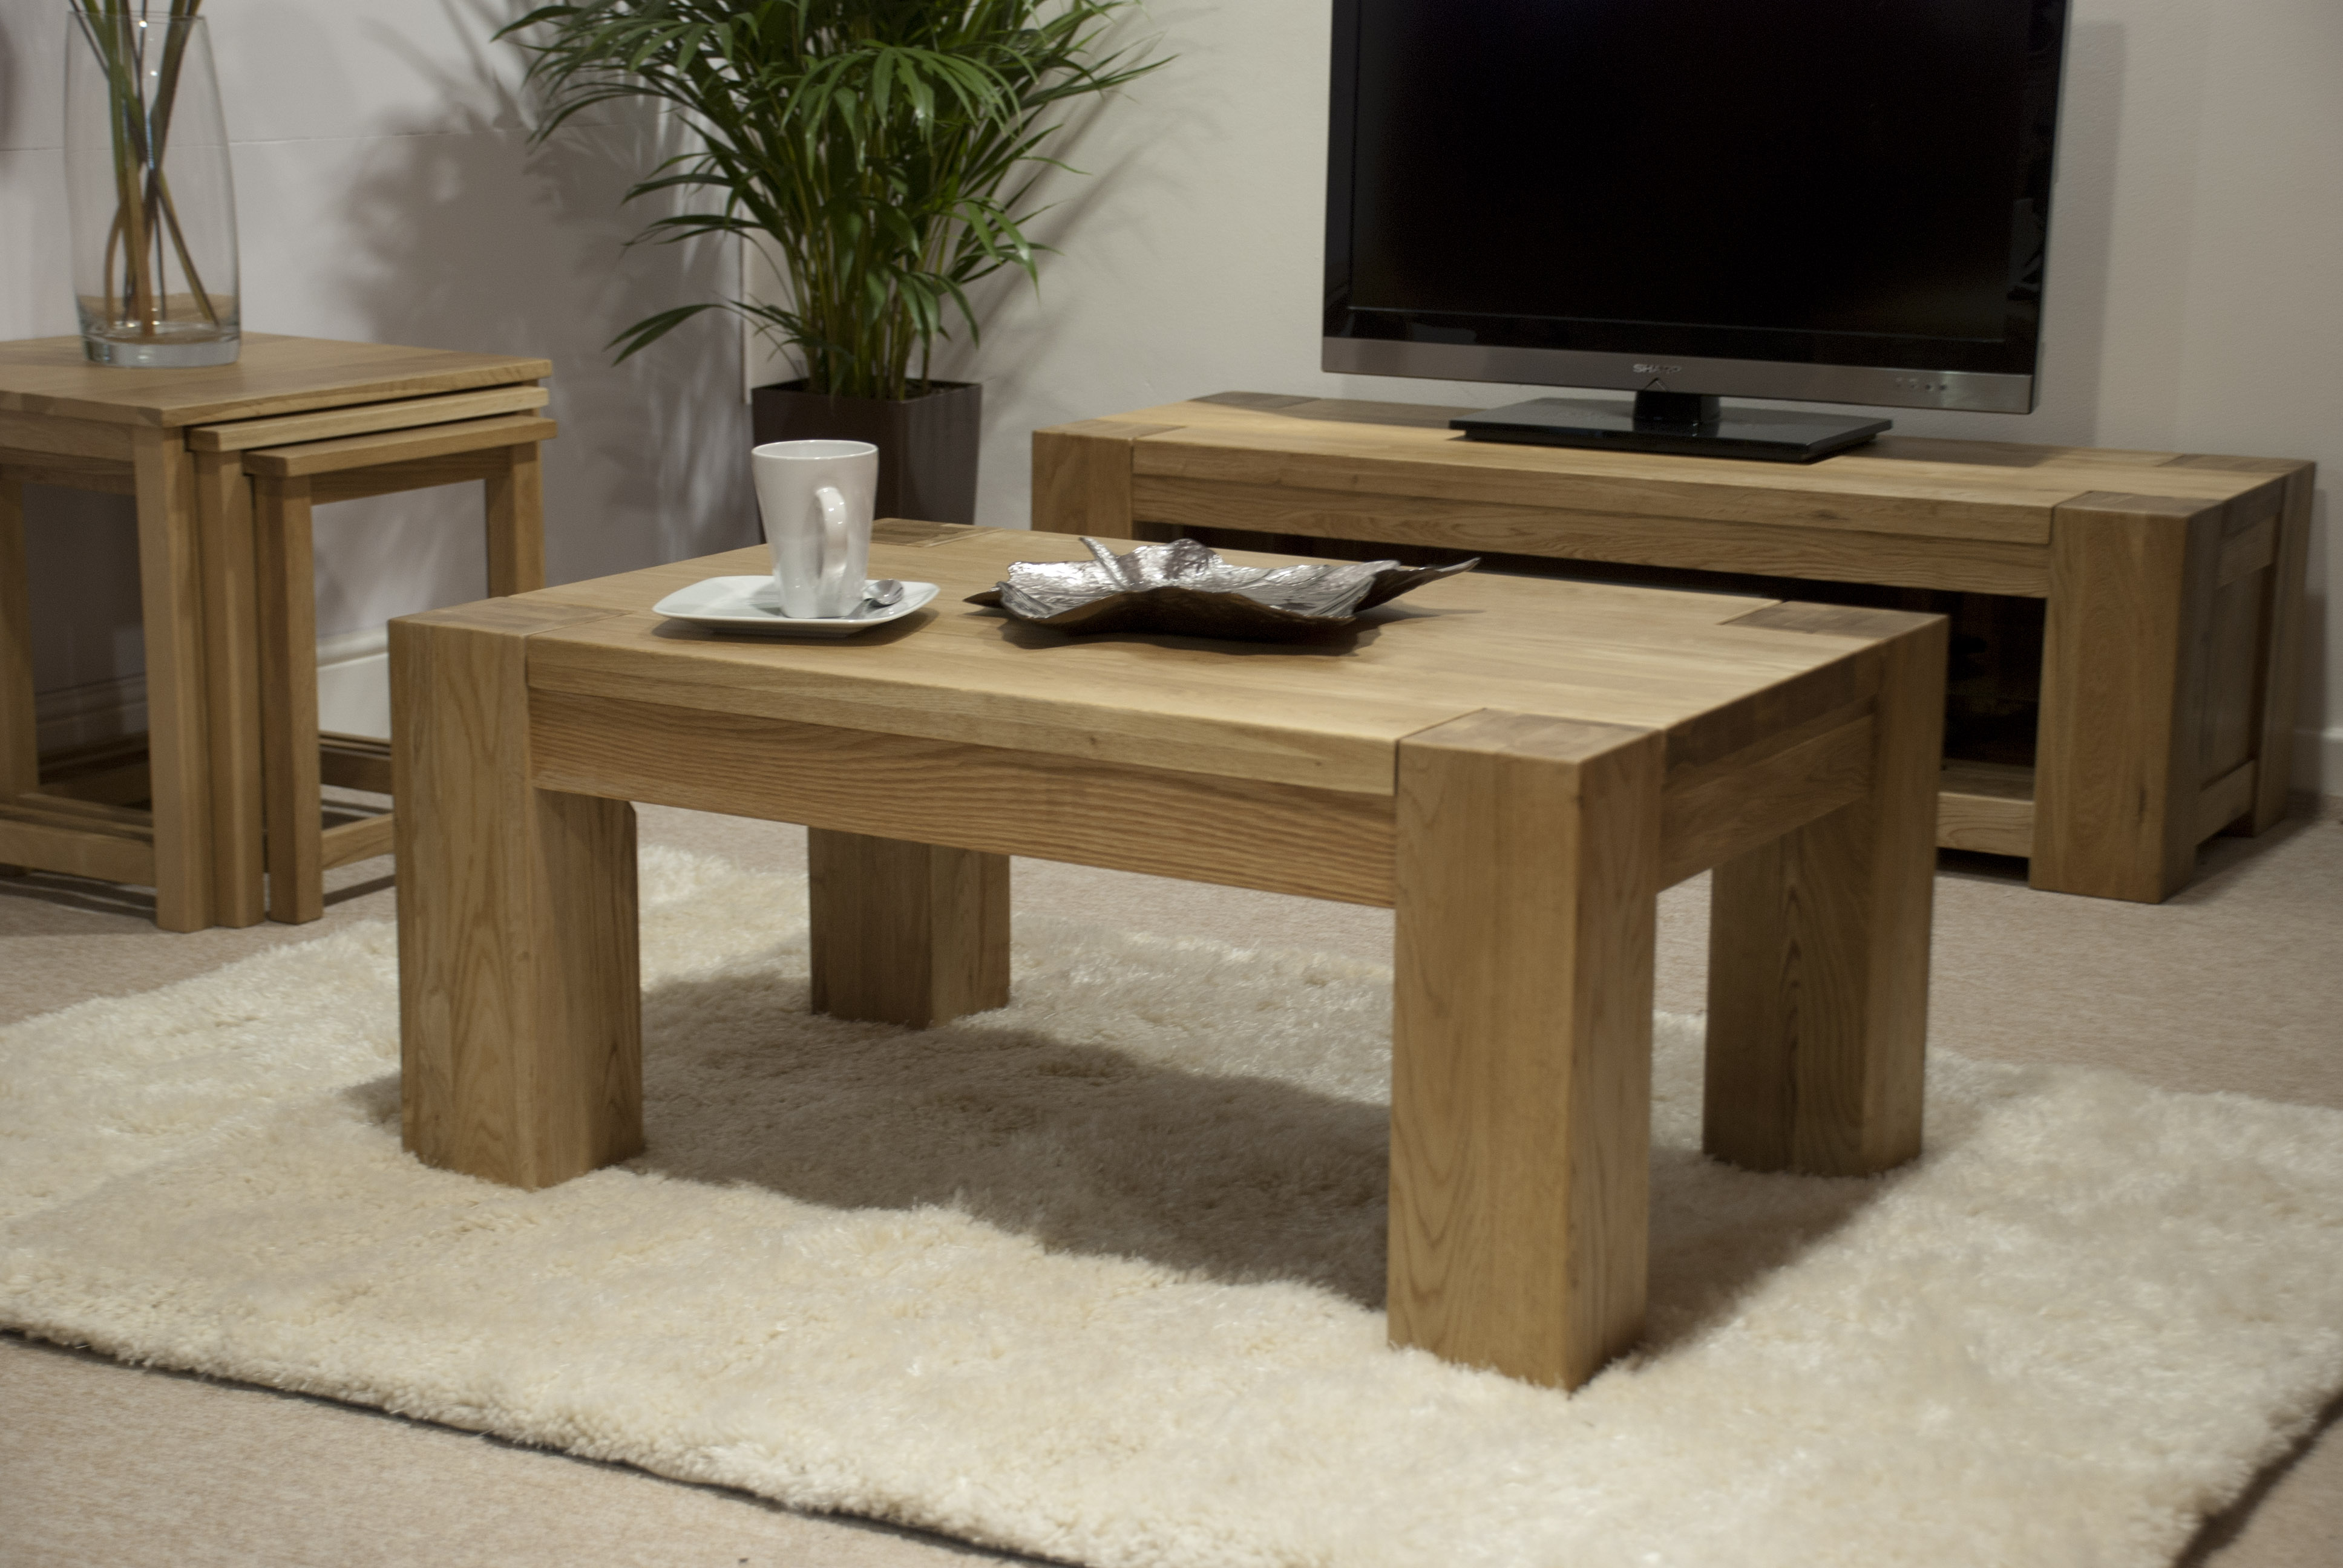 Trend Lifestyle Oak 3 X 2 Coffee Table